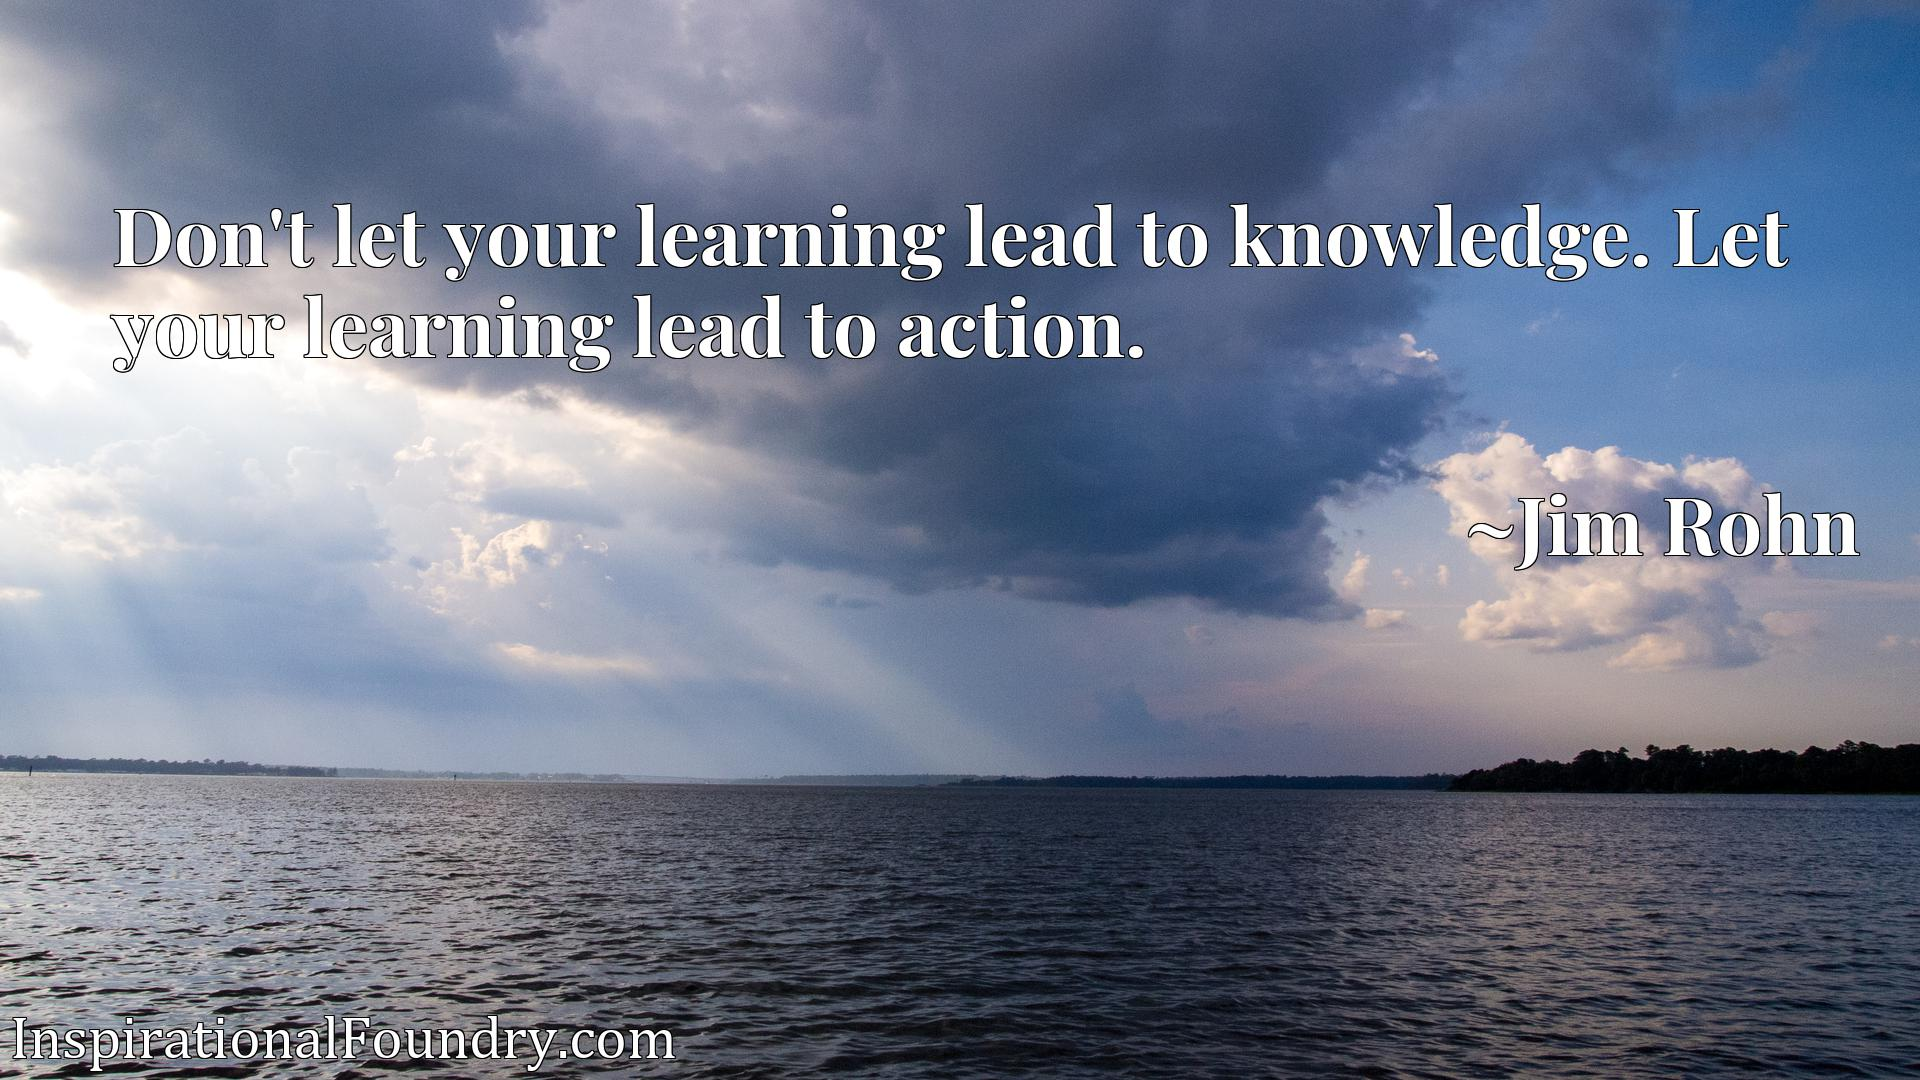 Don't let your learning lead to knowledge. Let your learning lead to action.